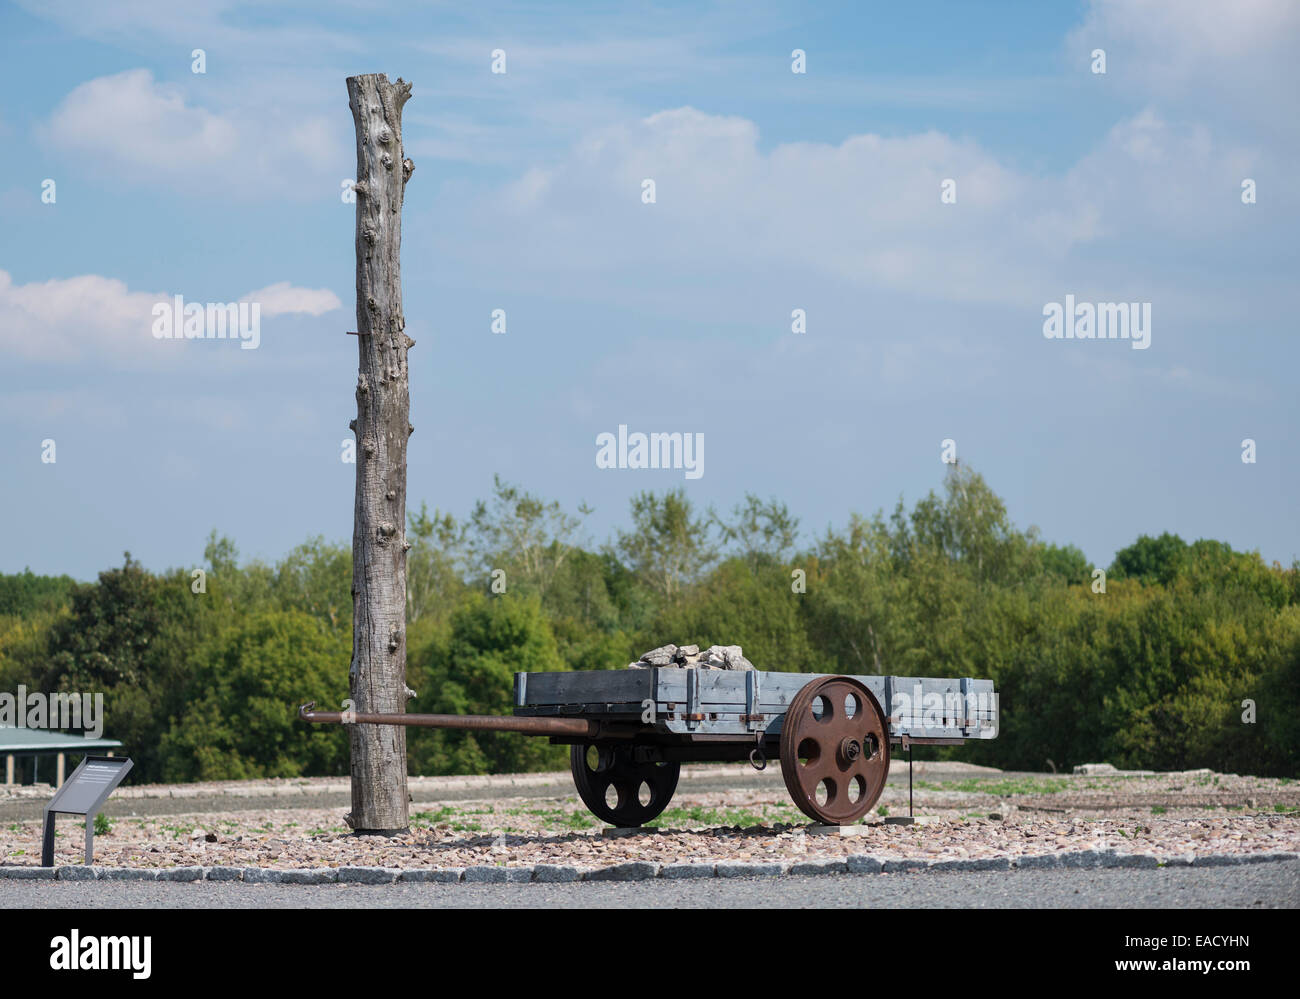 Pile and carts, tools and instruments of labor, Buchenwald concentration camp, Weimar, Thuringia, Germany - Stock Image